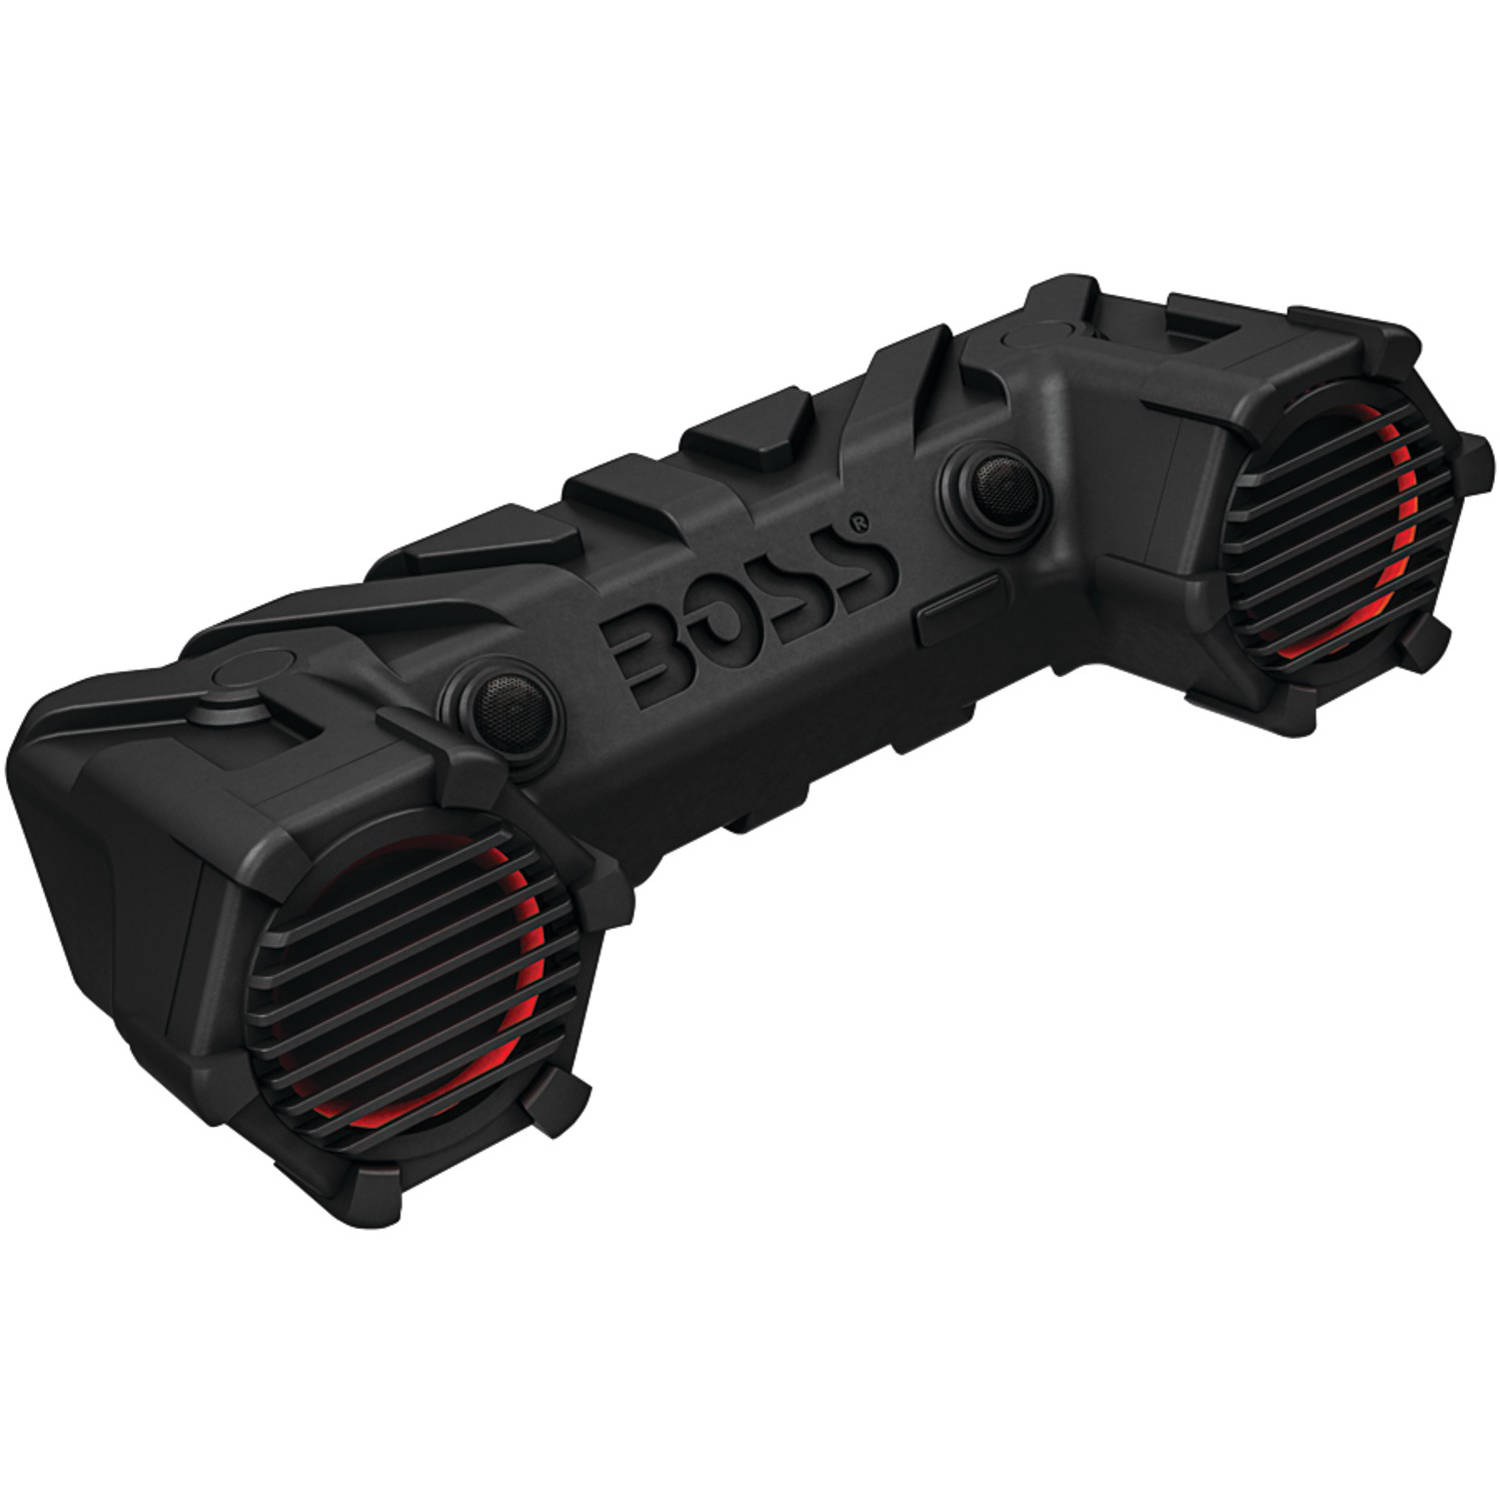 Boss Audio ATV30BRGB - Powersports Plug & Play Bluetooth Sound System with 450 Watt Built-in Amplifier